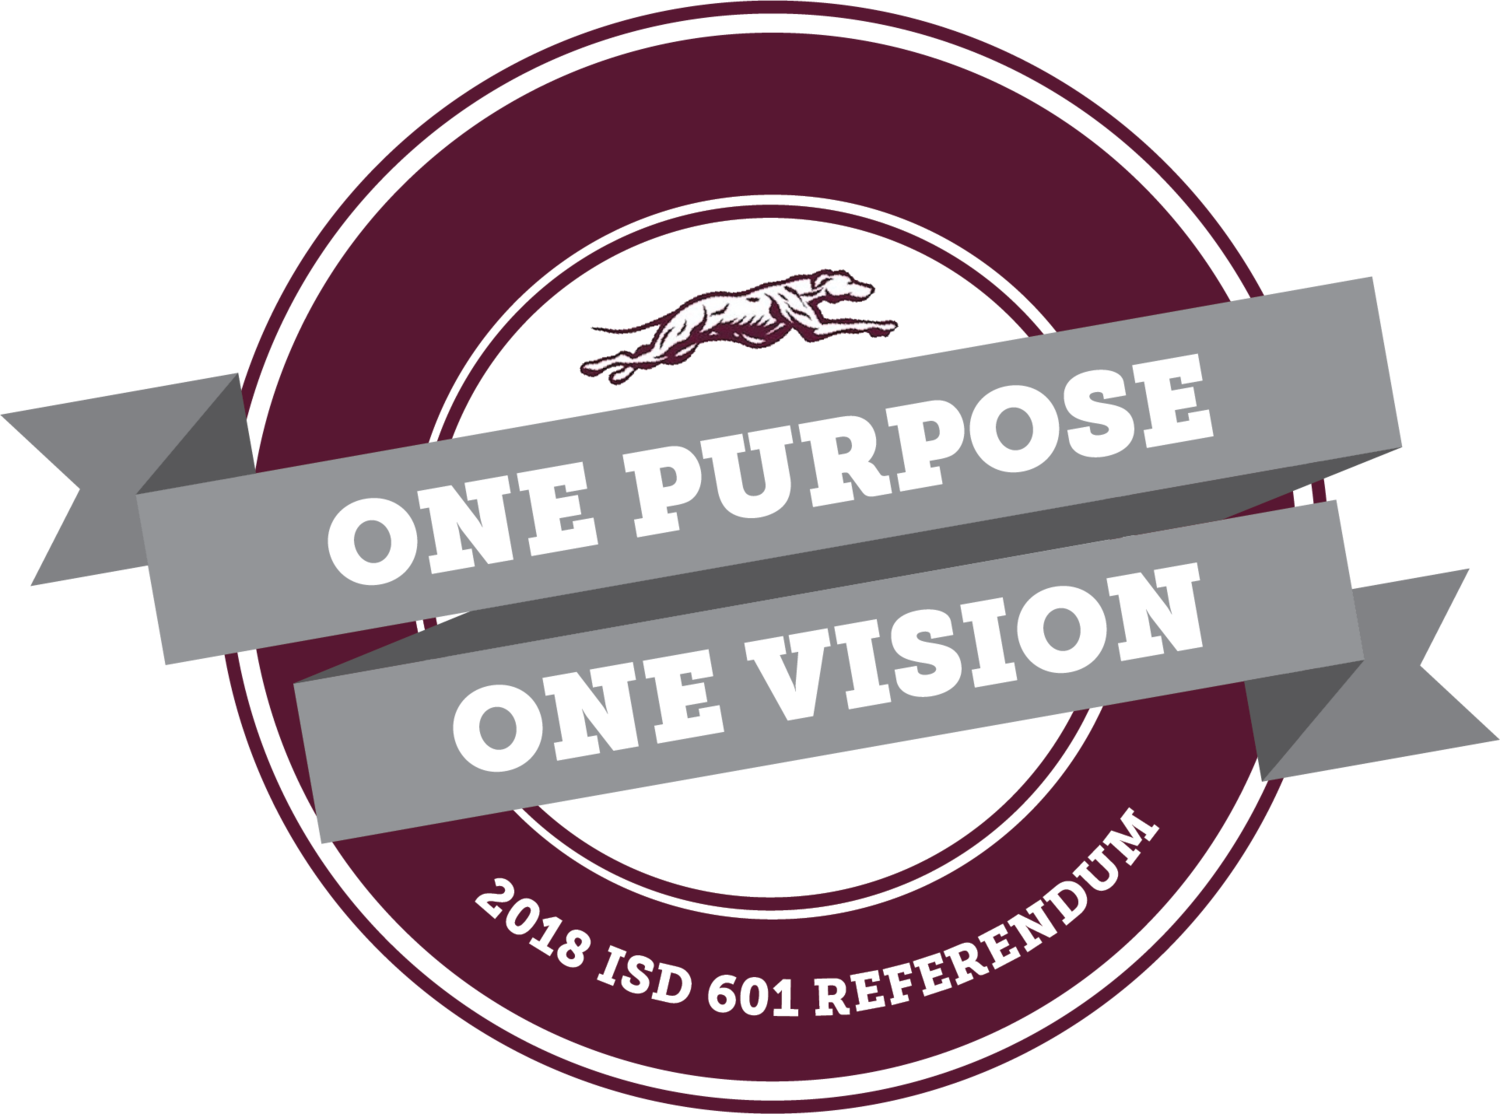 One Purpose One Vision